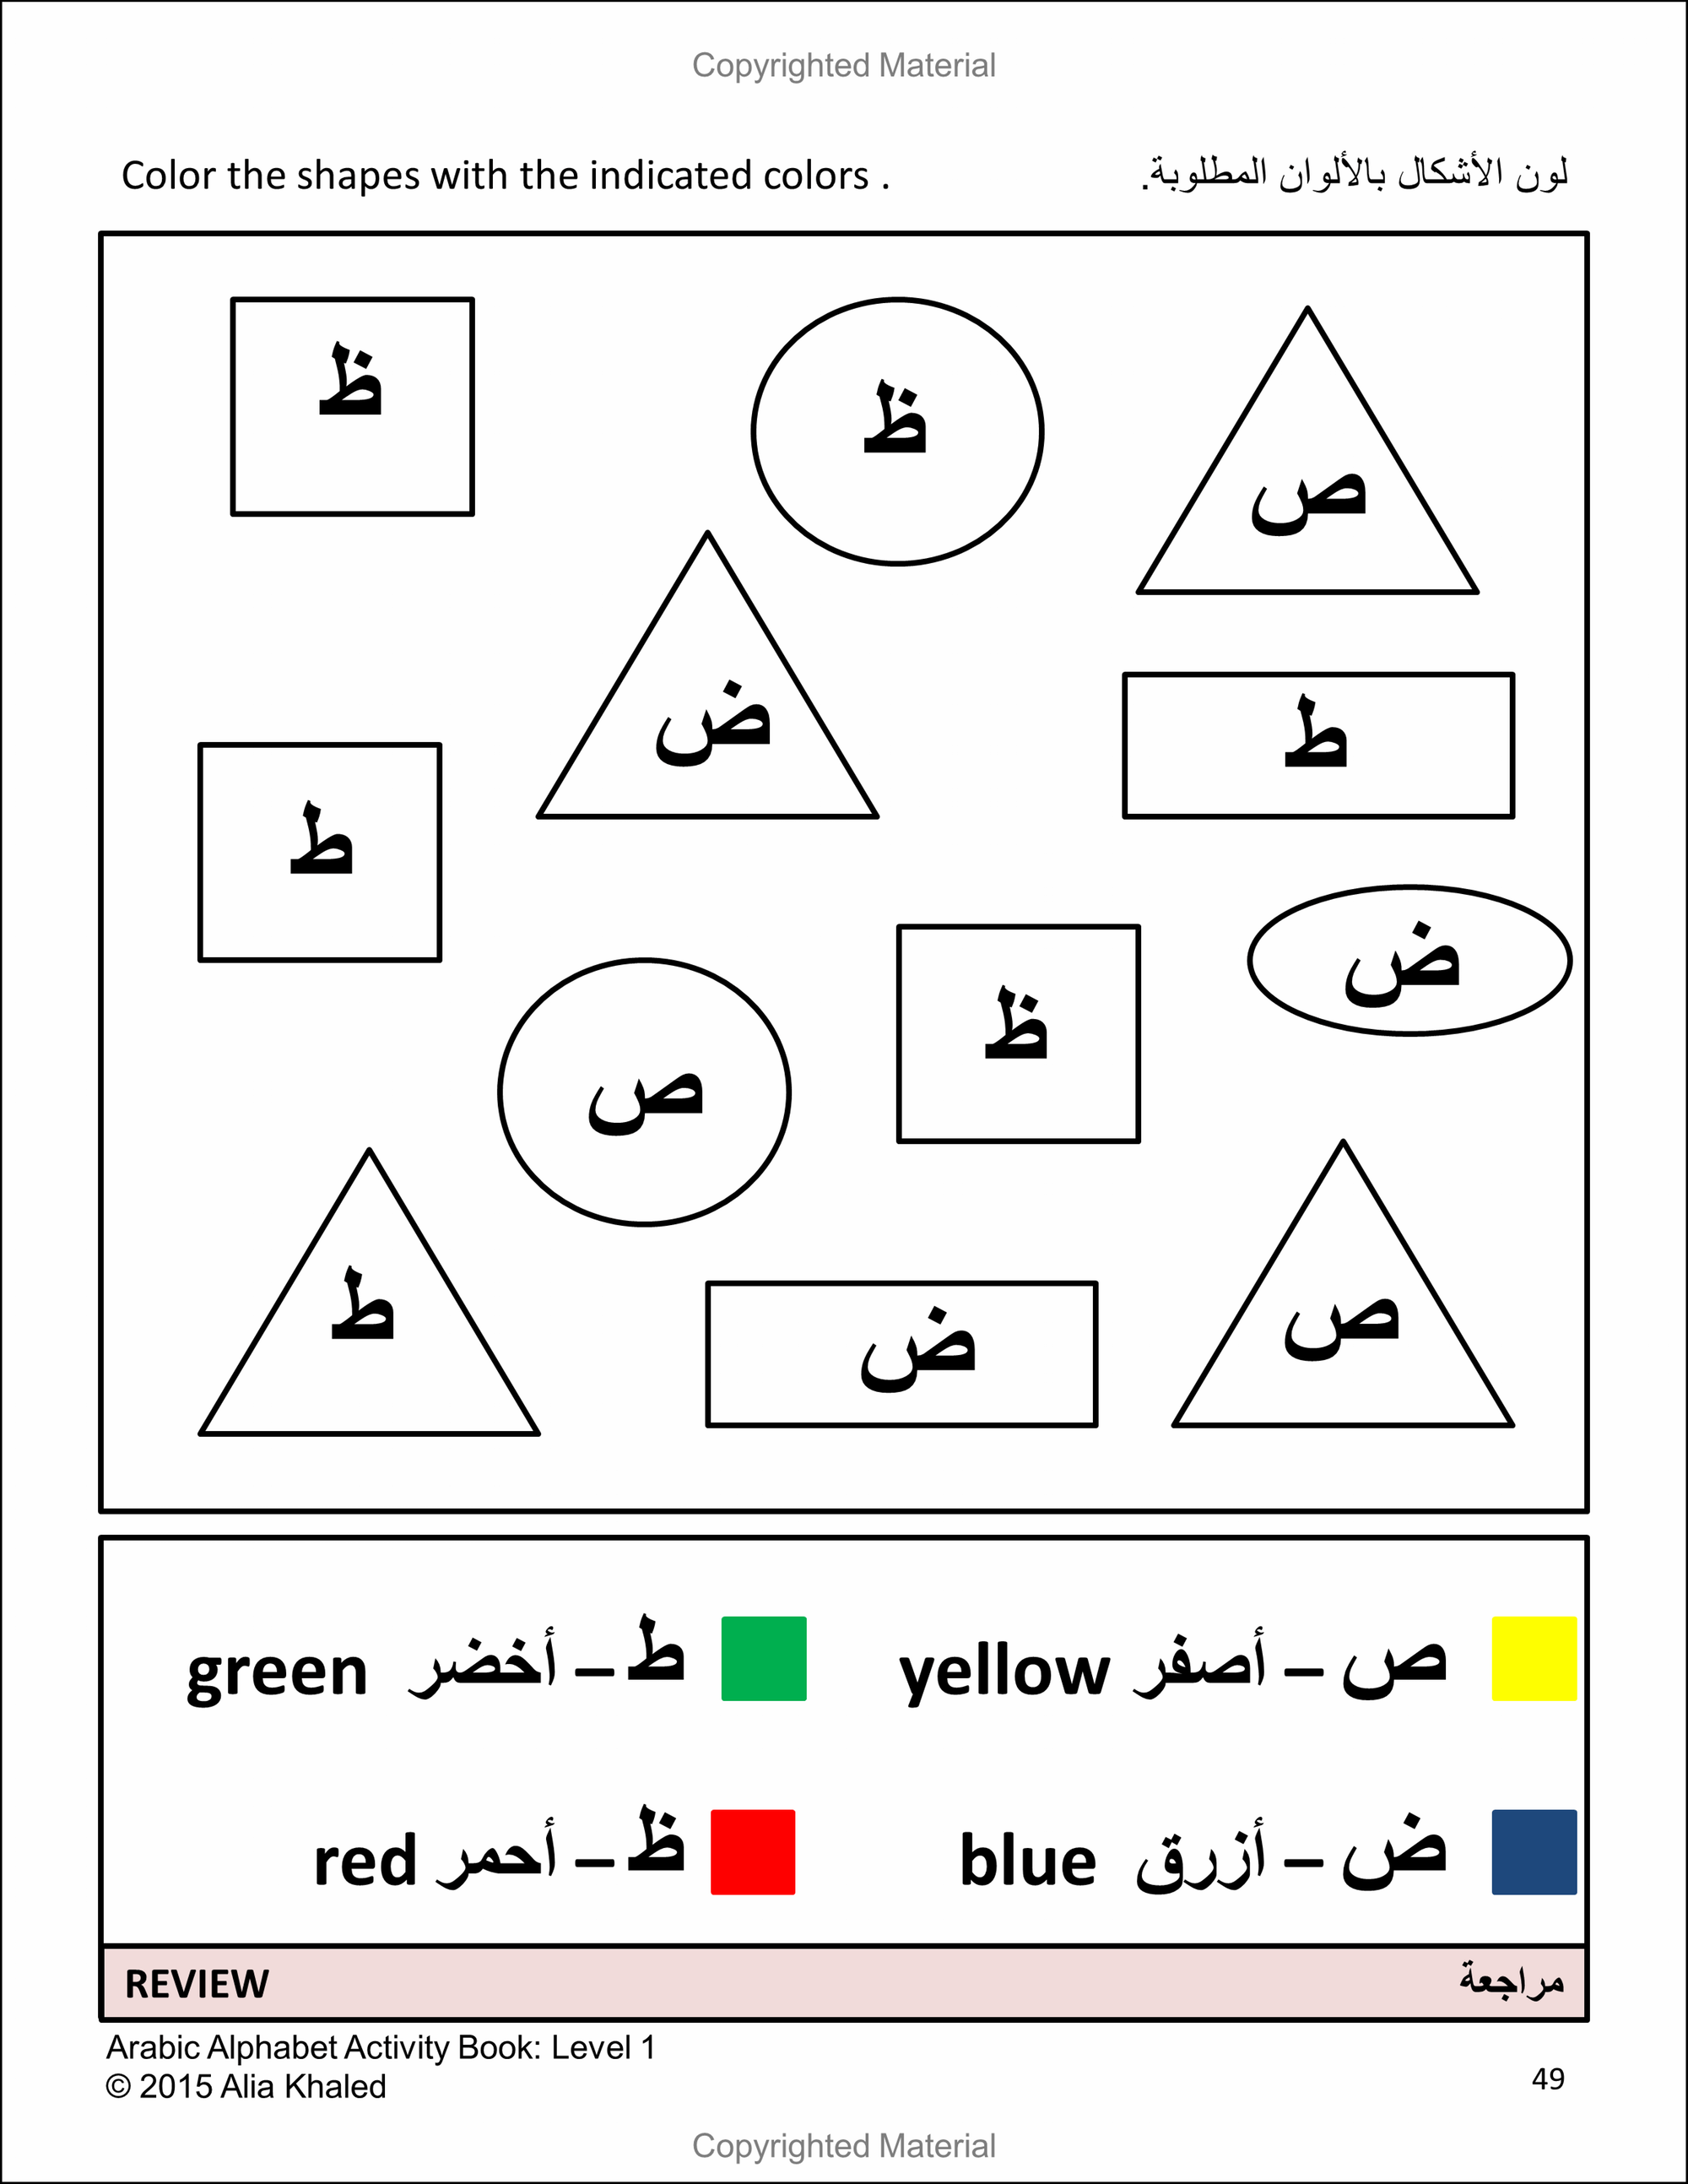 Image Of Arabic Alphabet Activity Book Level 1 Colored